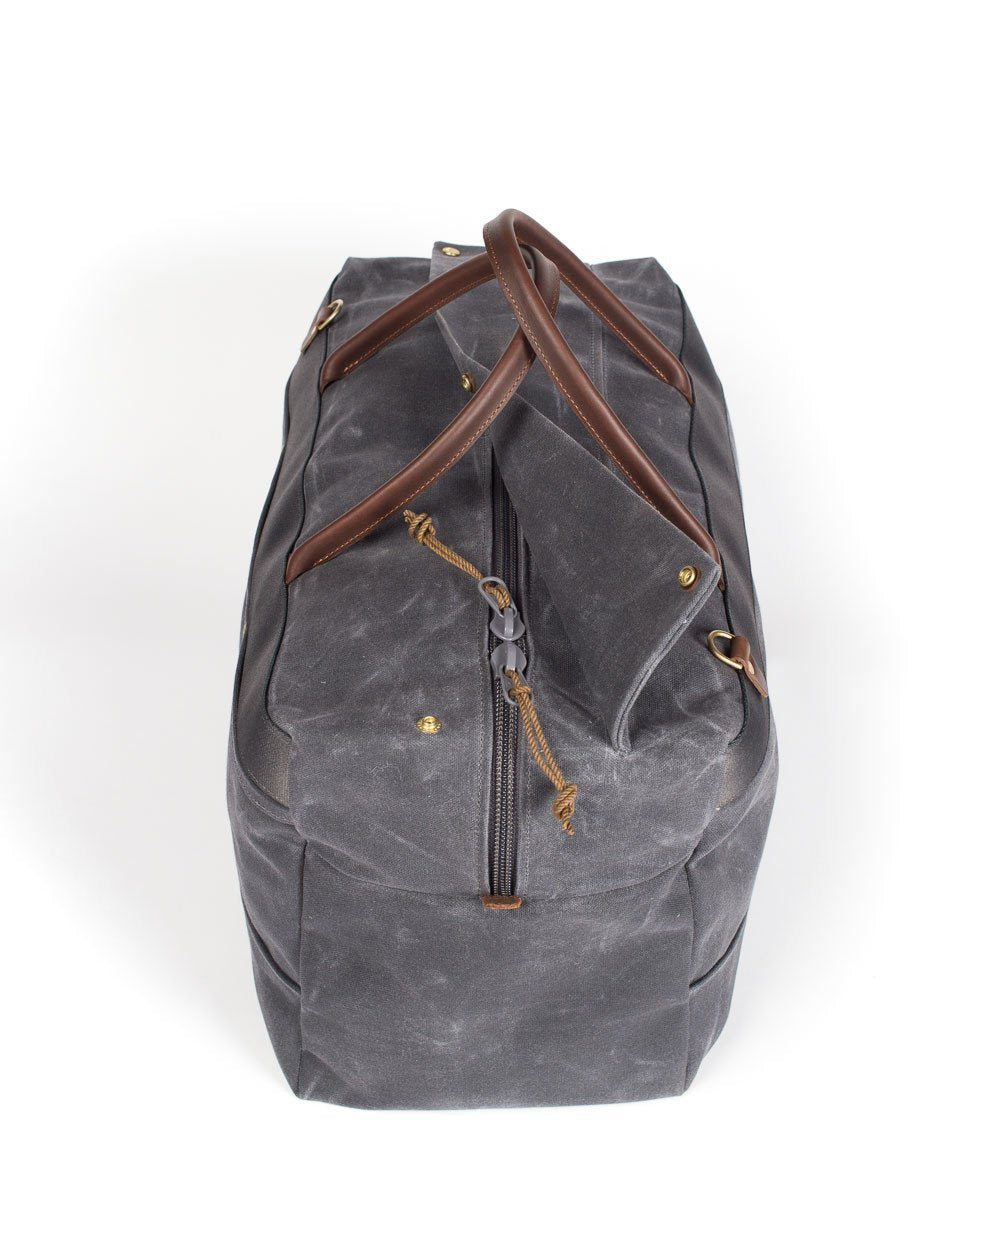 Wood & Faulk Grand Tourer Duffel in Cambrian Slate, waxed canvas, weekender